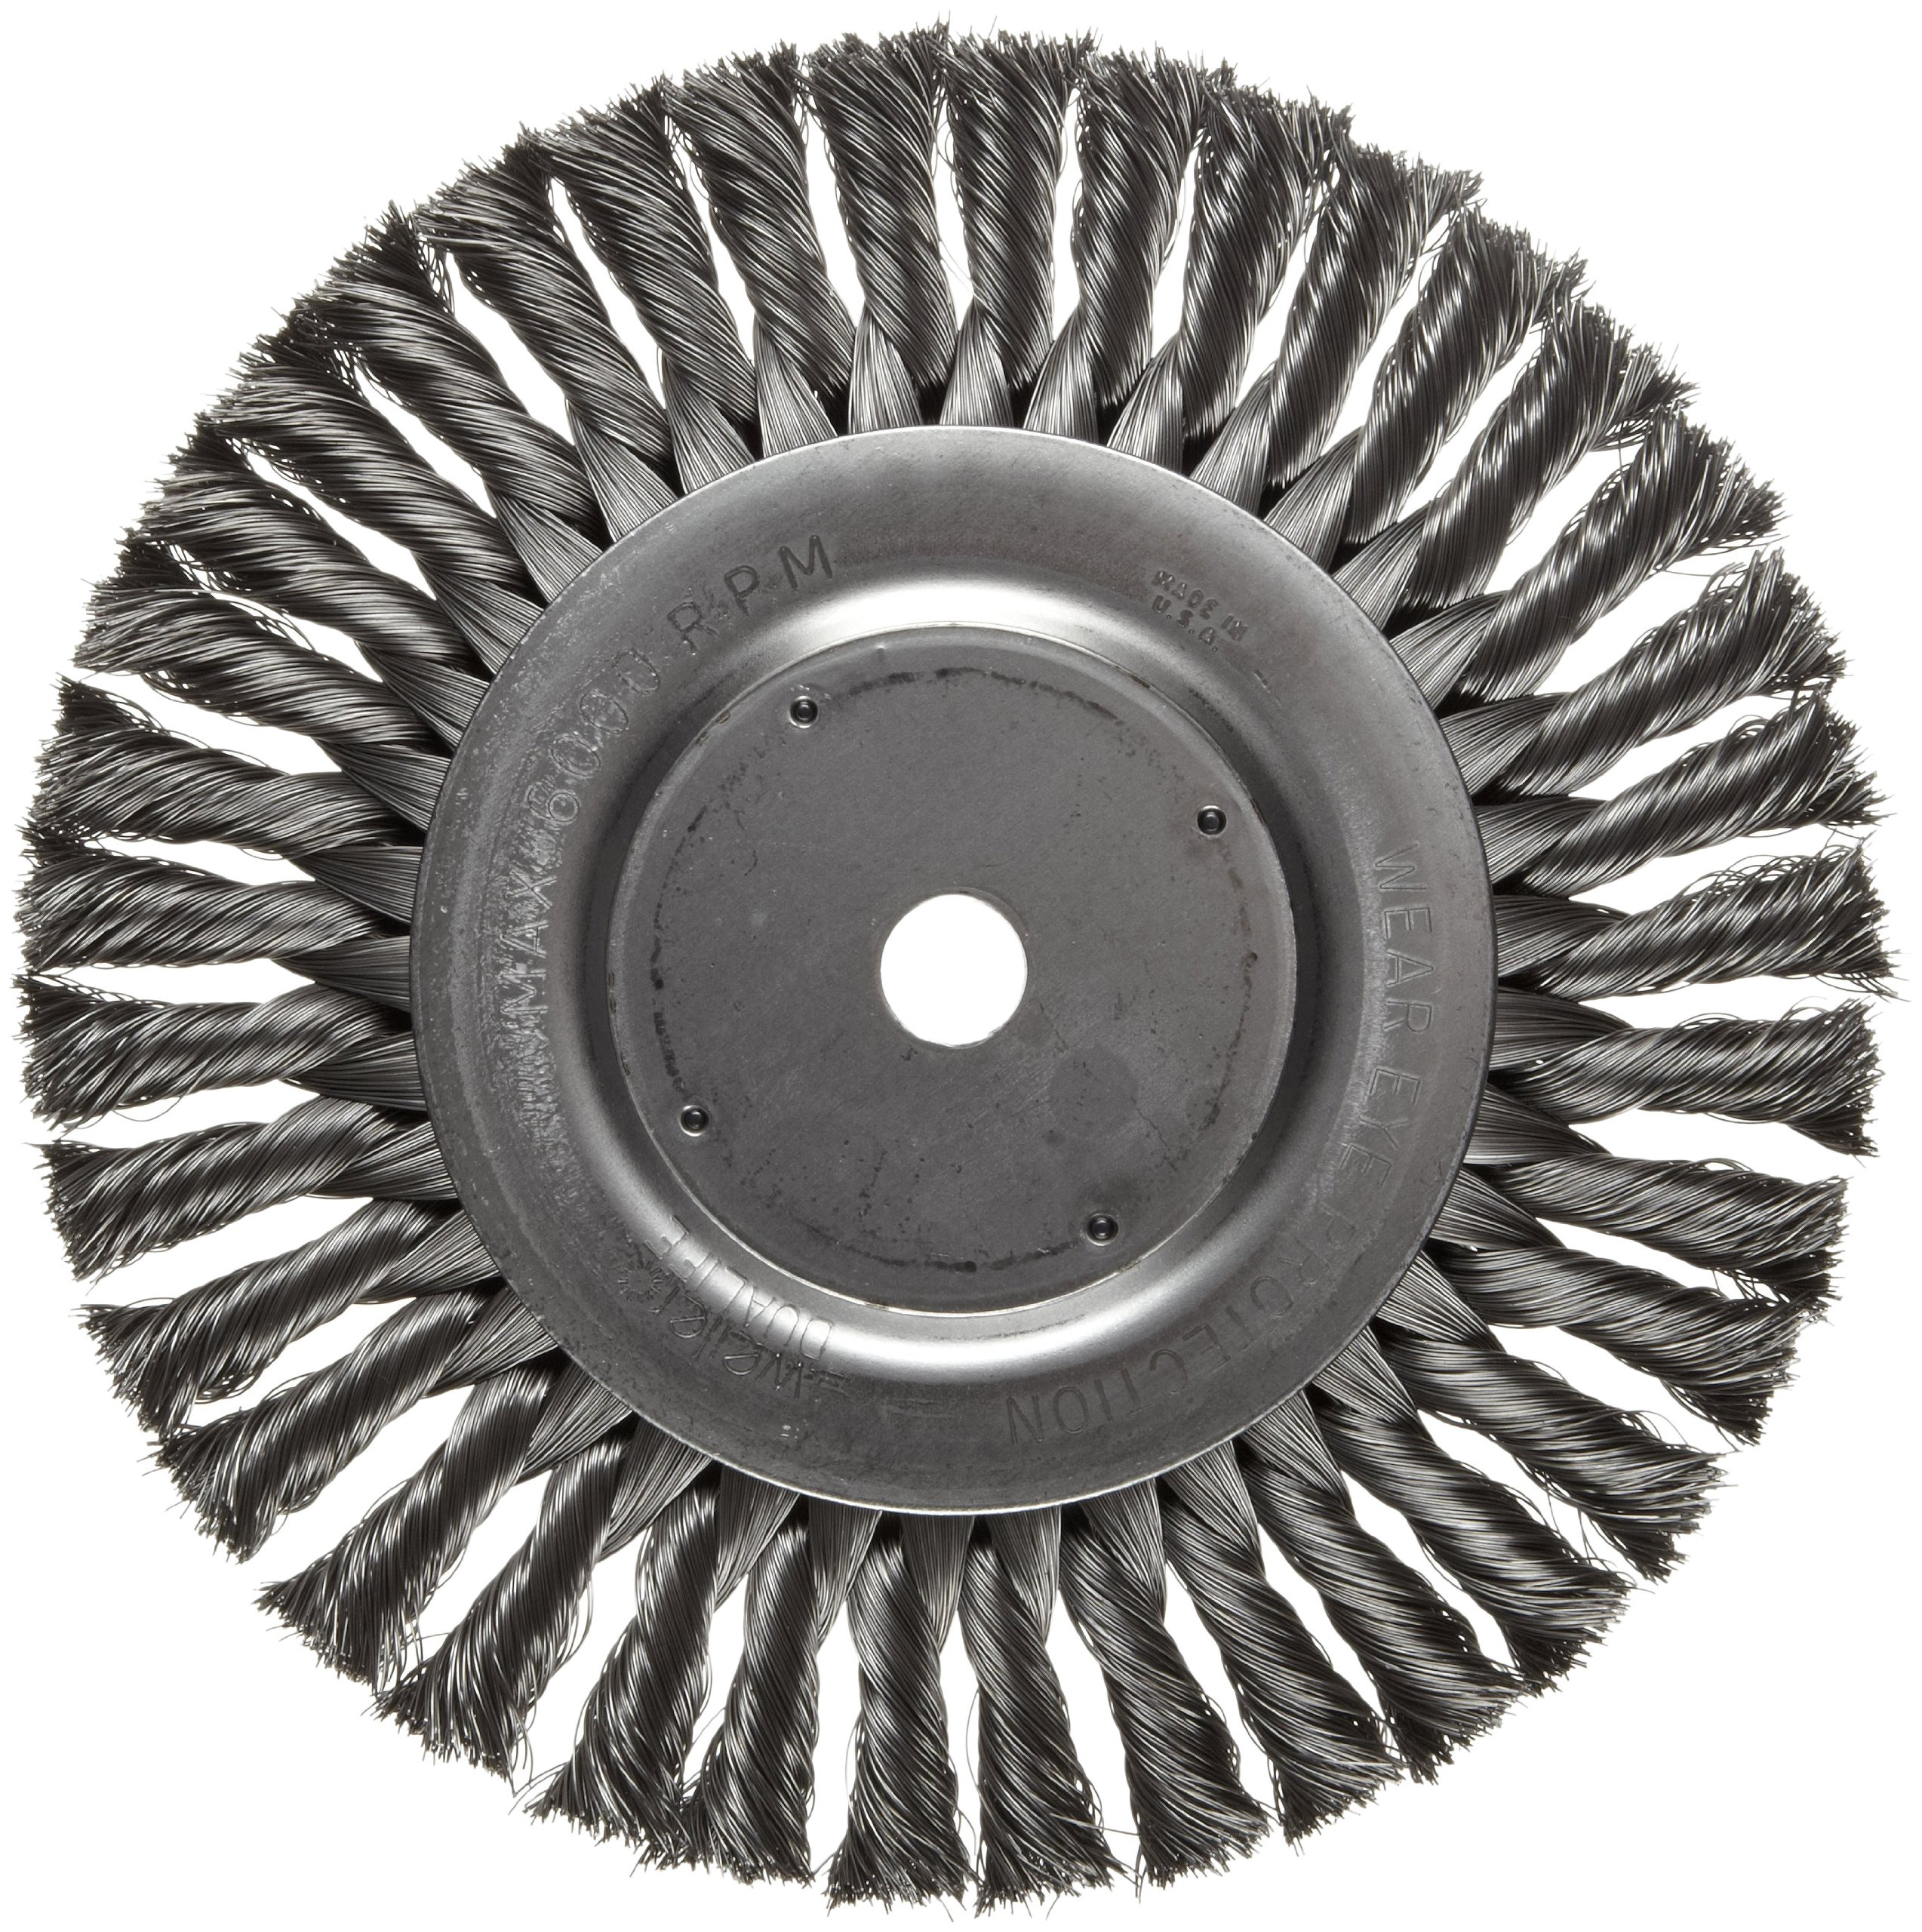 Weiler Dualife Standard Wire Wheel Brush, Round Hole, Steel, Partial Twist Knotted, 8'' Diameter, 0.014'' Wire Diameter, 5/8'' Arbor, 1-5/8'' Bristle Length, 5/8'' Brush Face Width, 6000 rpm by Weiler